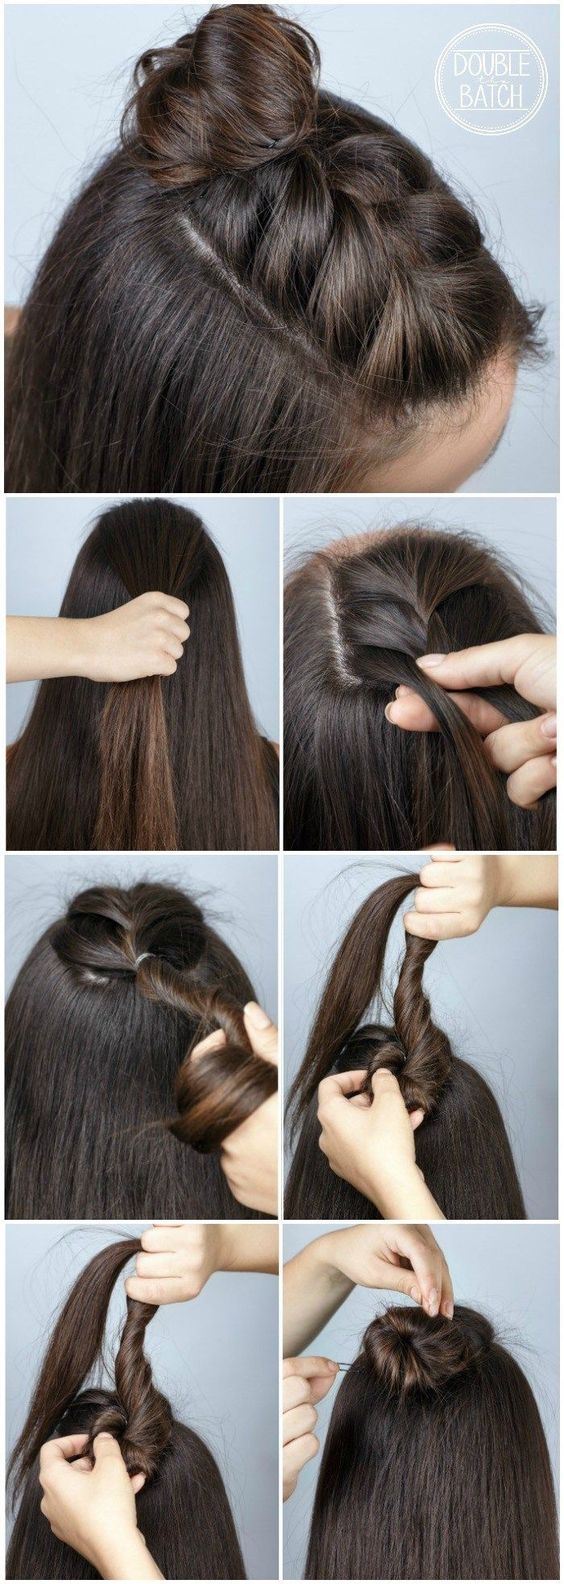 10 Quick and Easy Back-to-School Hairstyle Tutorials